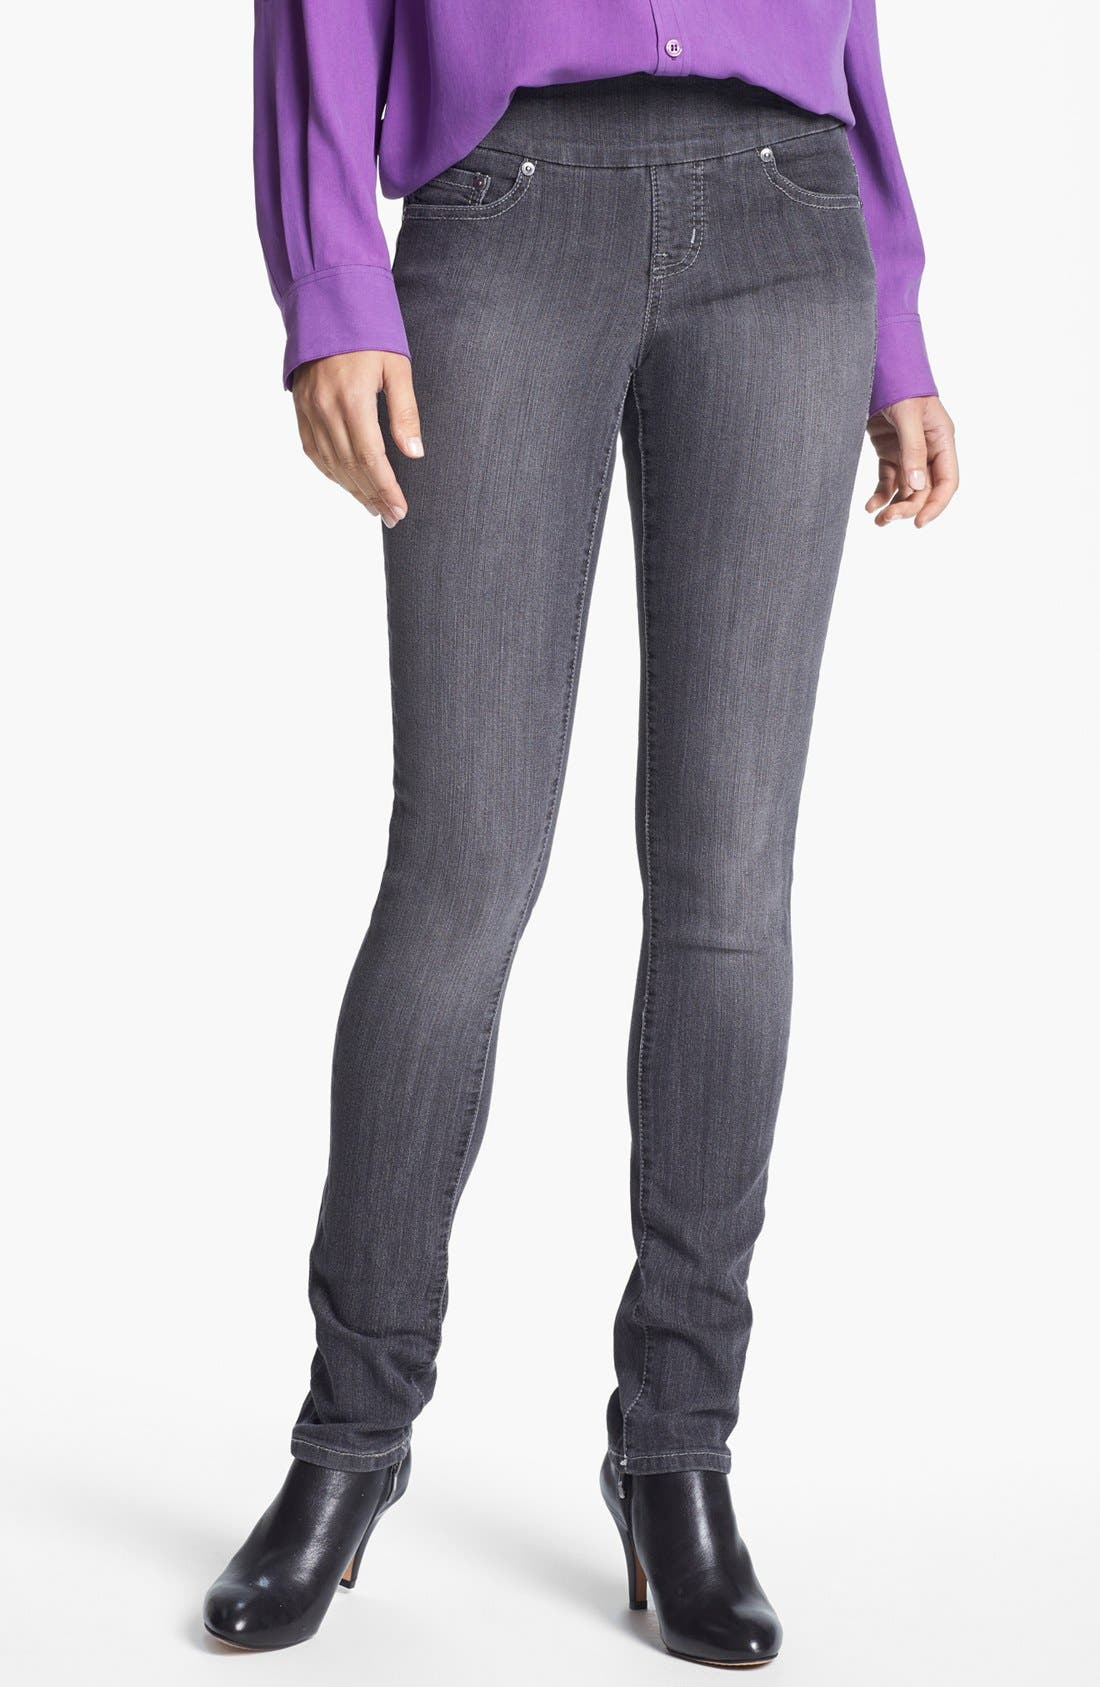 Alternate Image 1 Selected - Jag Jeans 'Malia' Slim Leg Stretch Jeans (Grey)